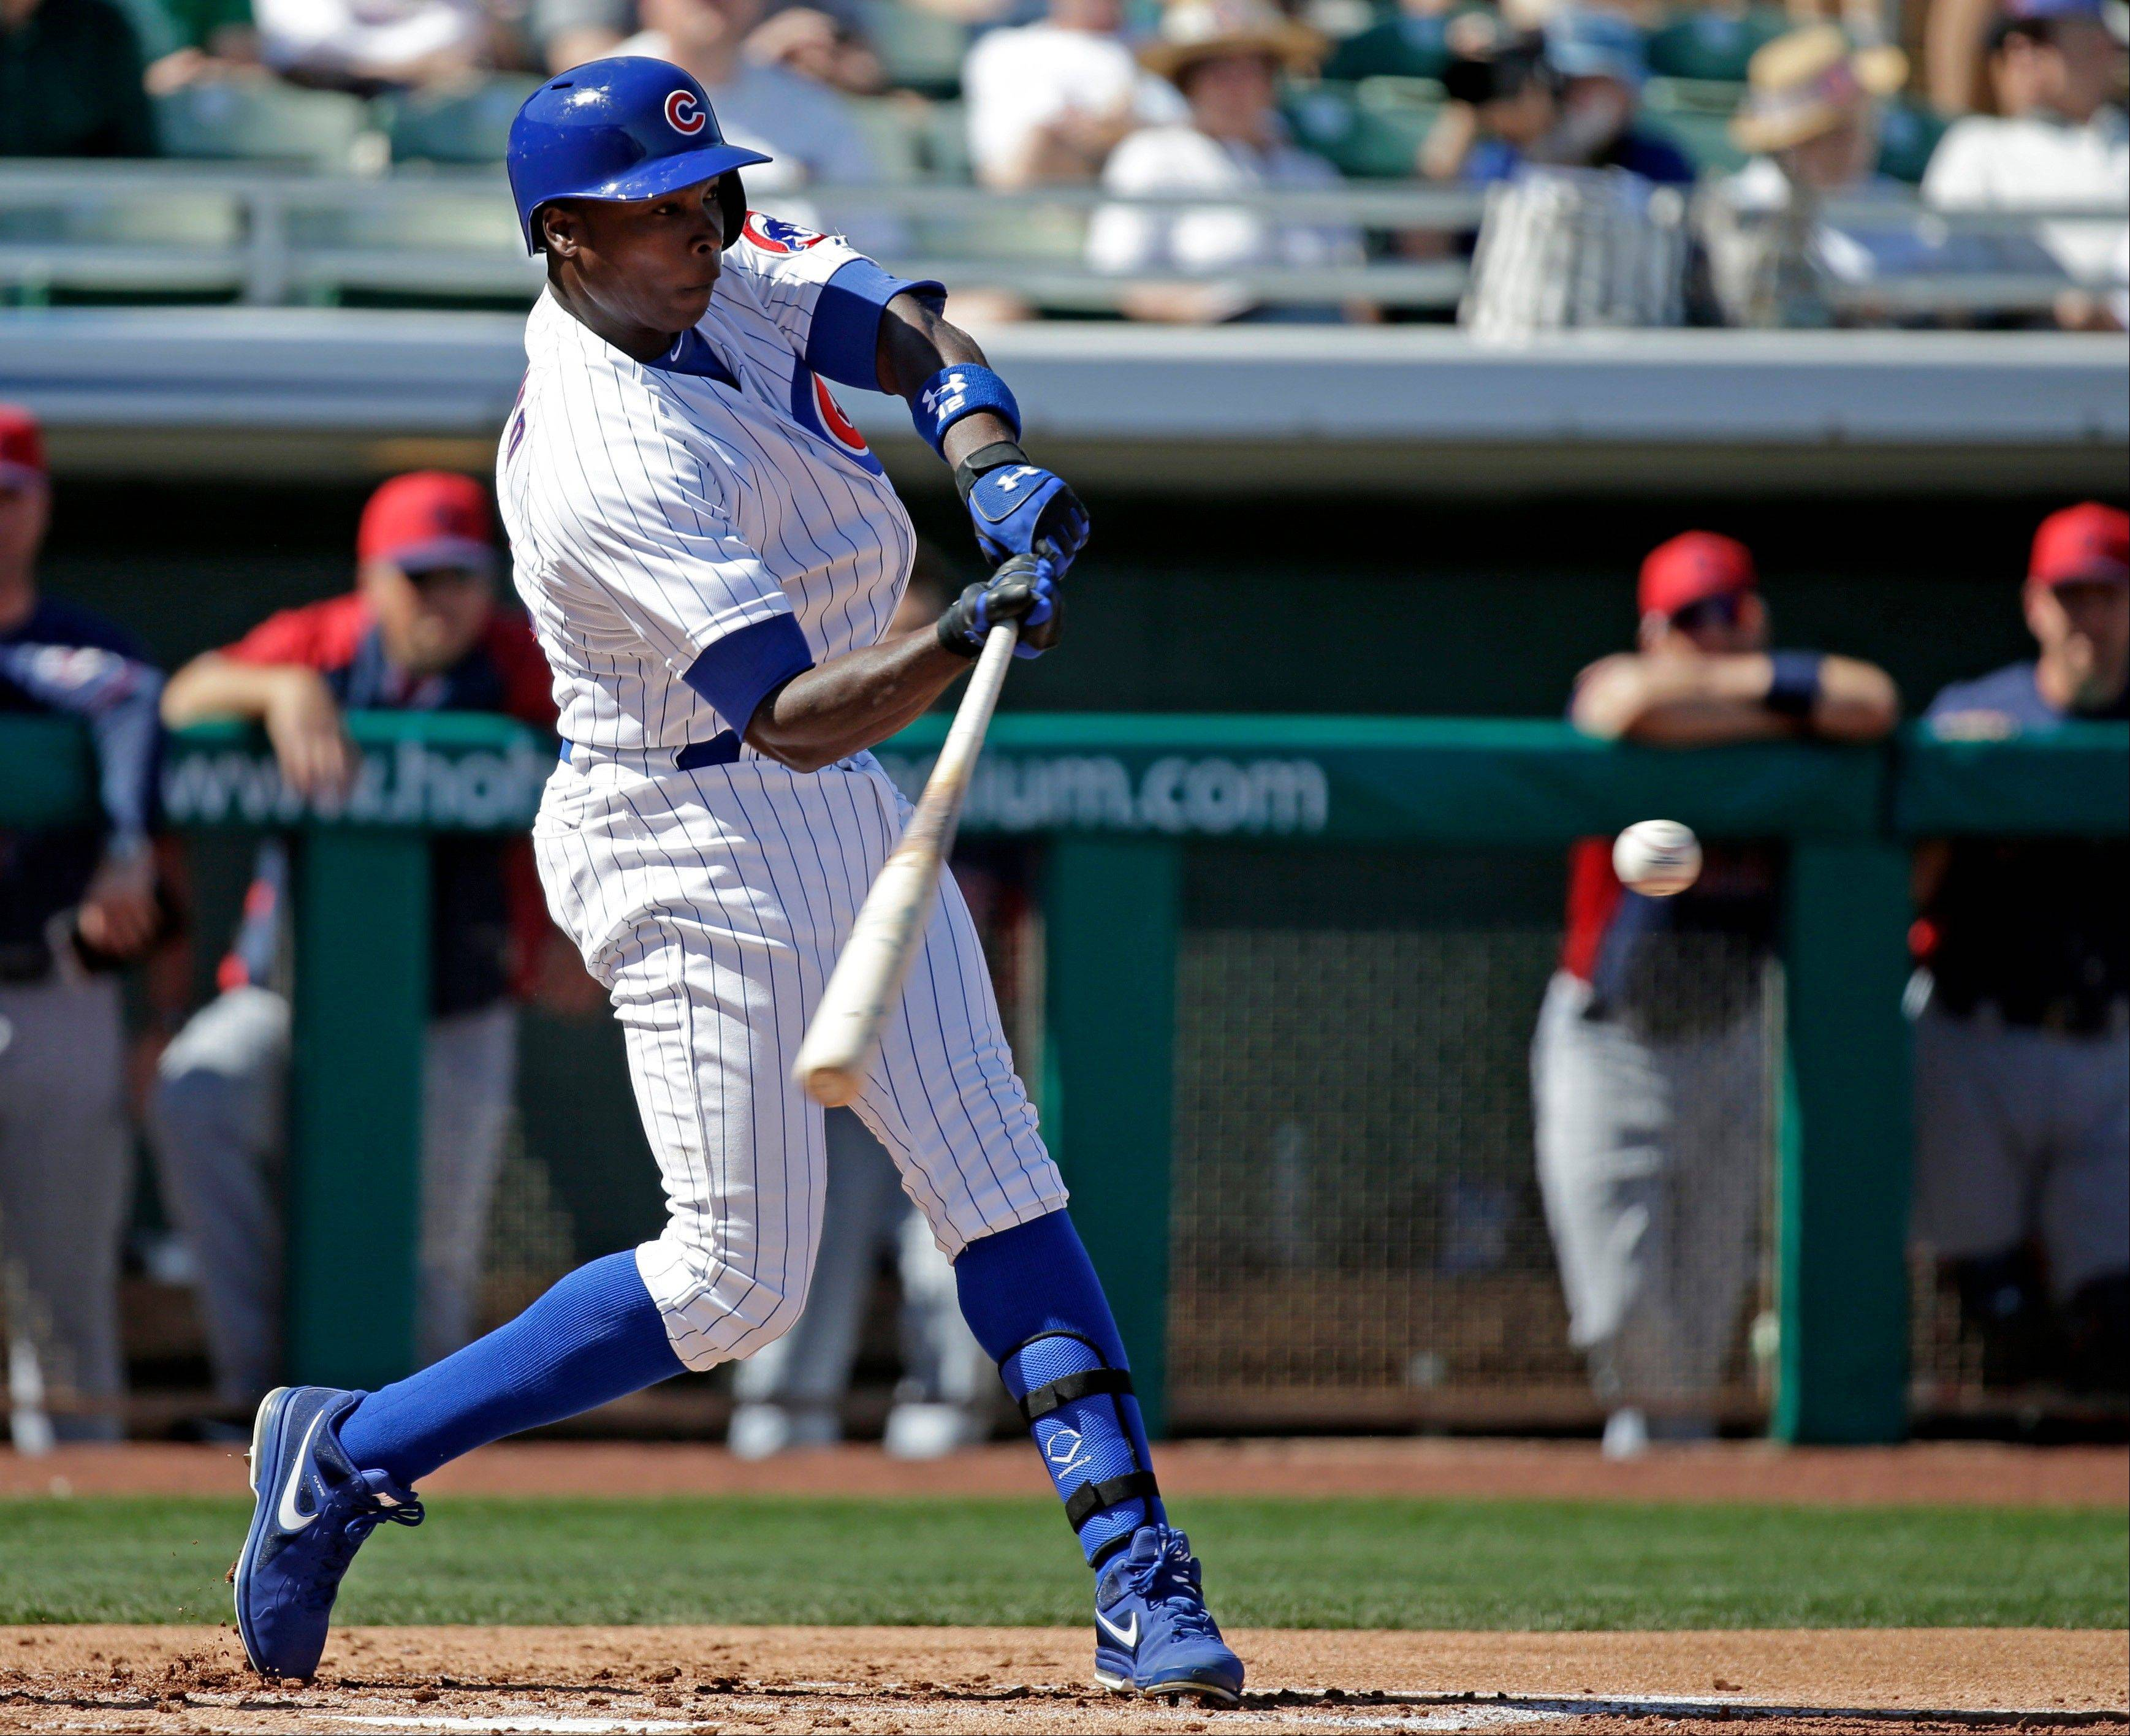 Chicago Cubs' Alfonso Soriano hits a home run during the second inning of an exhibition spring training baseball game against the Cleveland Indians Monday, March 4, 2013, in Mesa, Ariz.